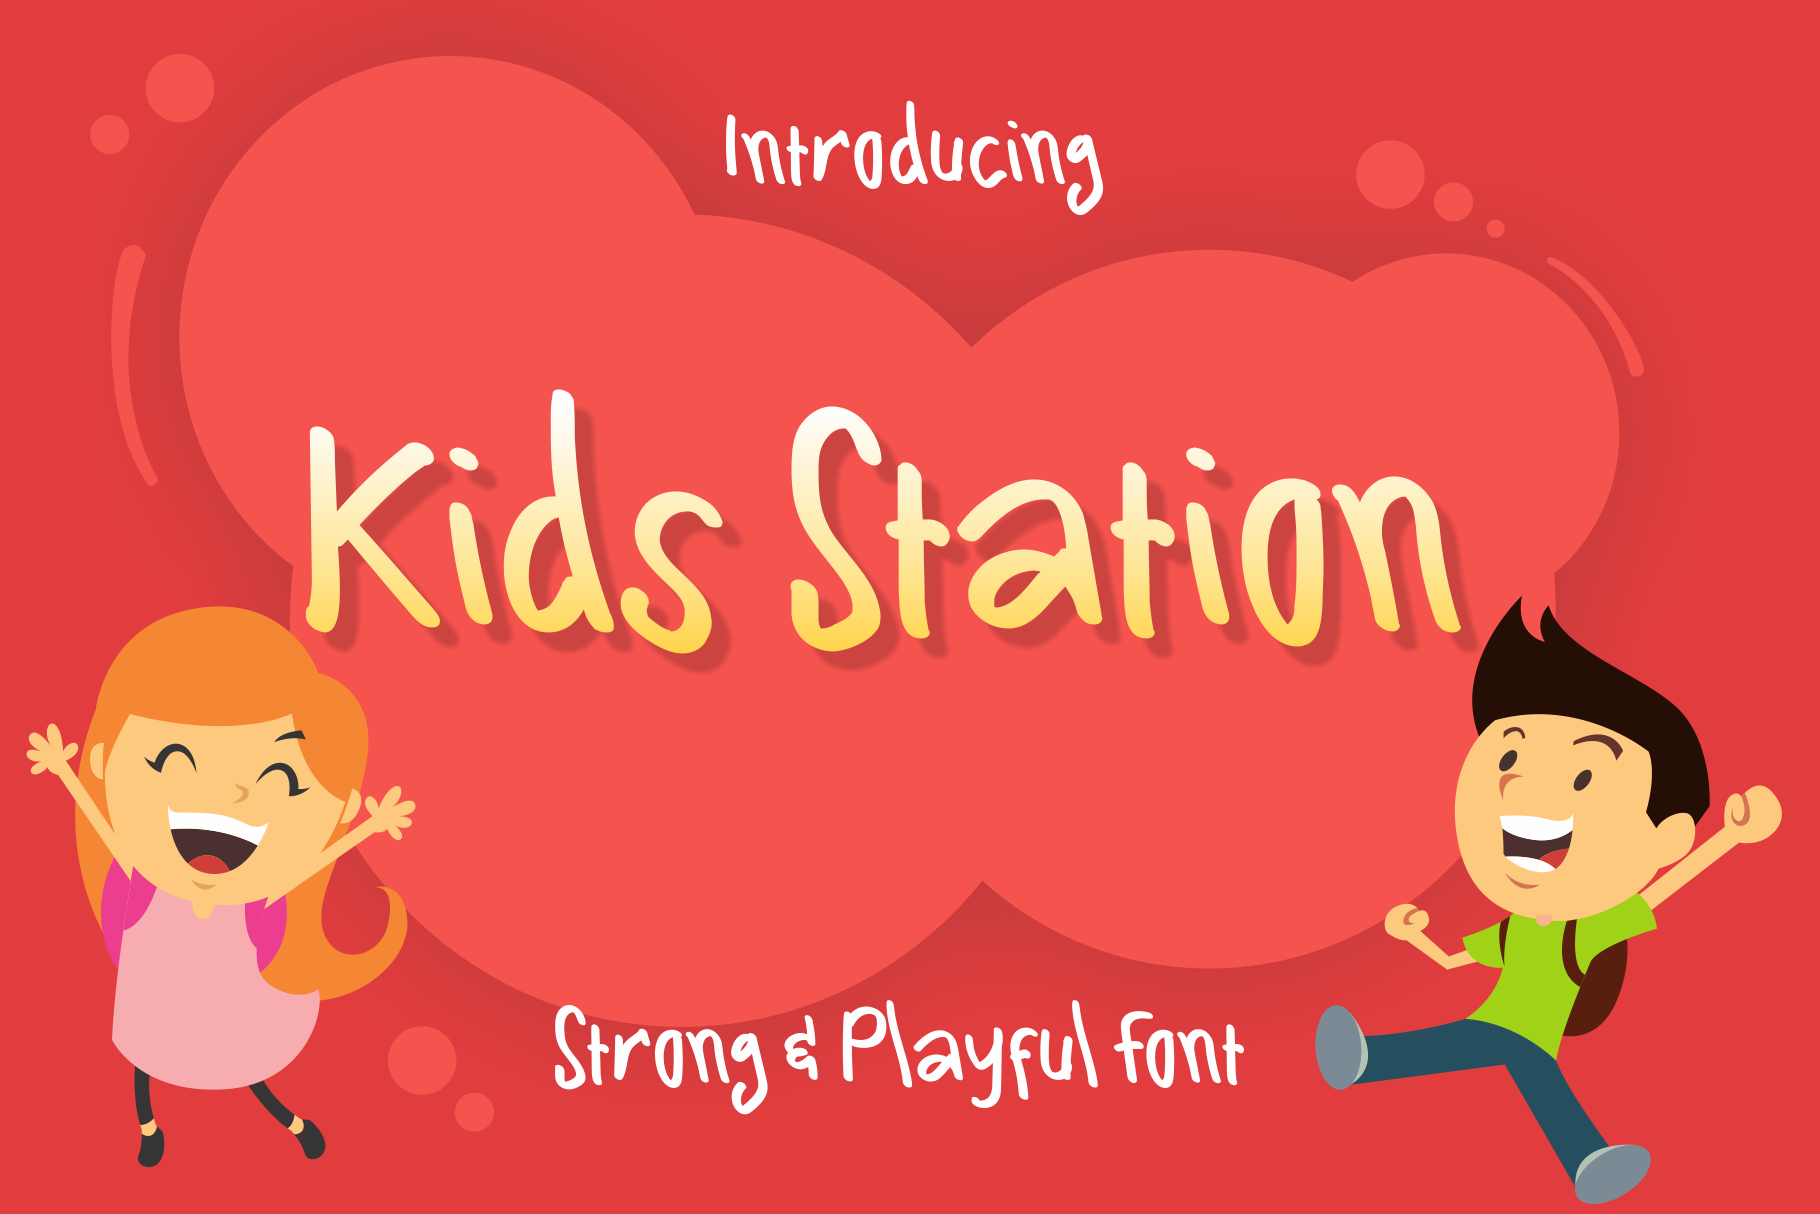 Kids Station Cute Font example image 1